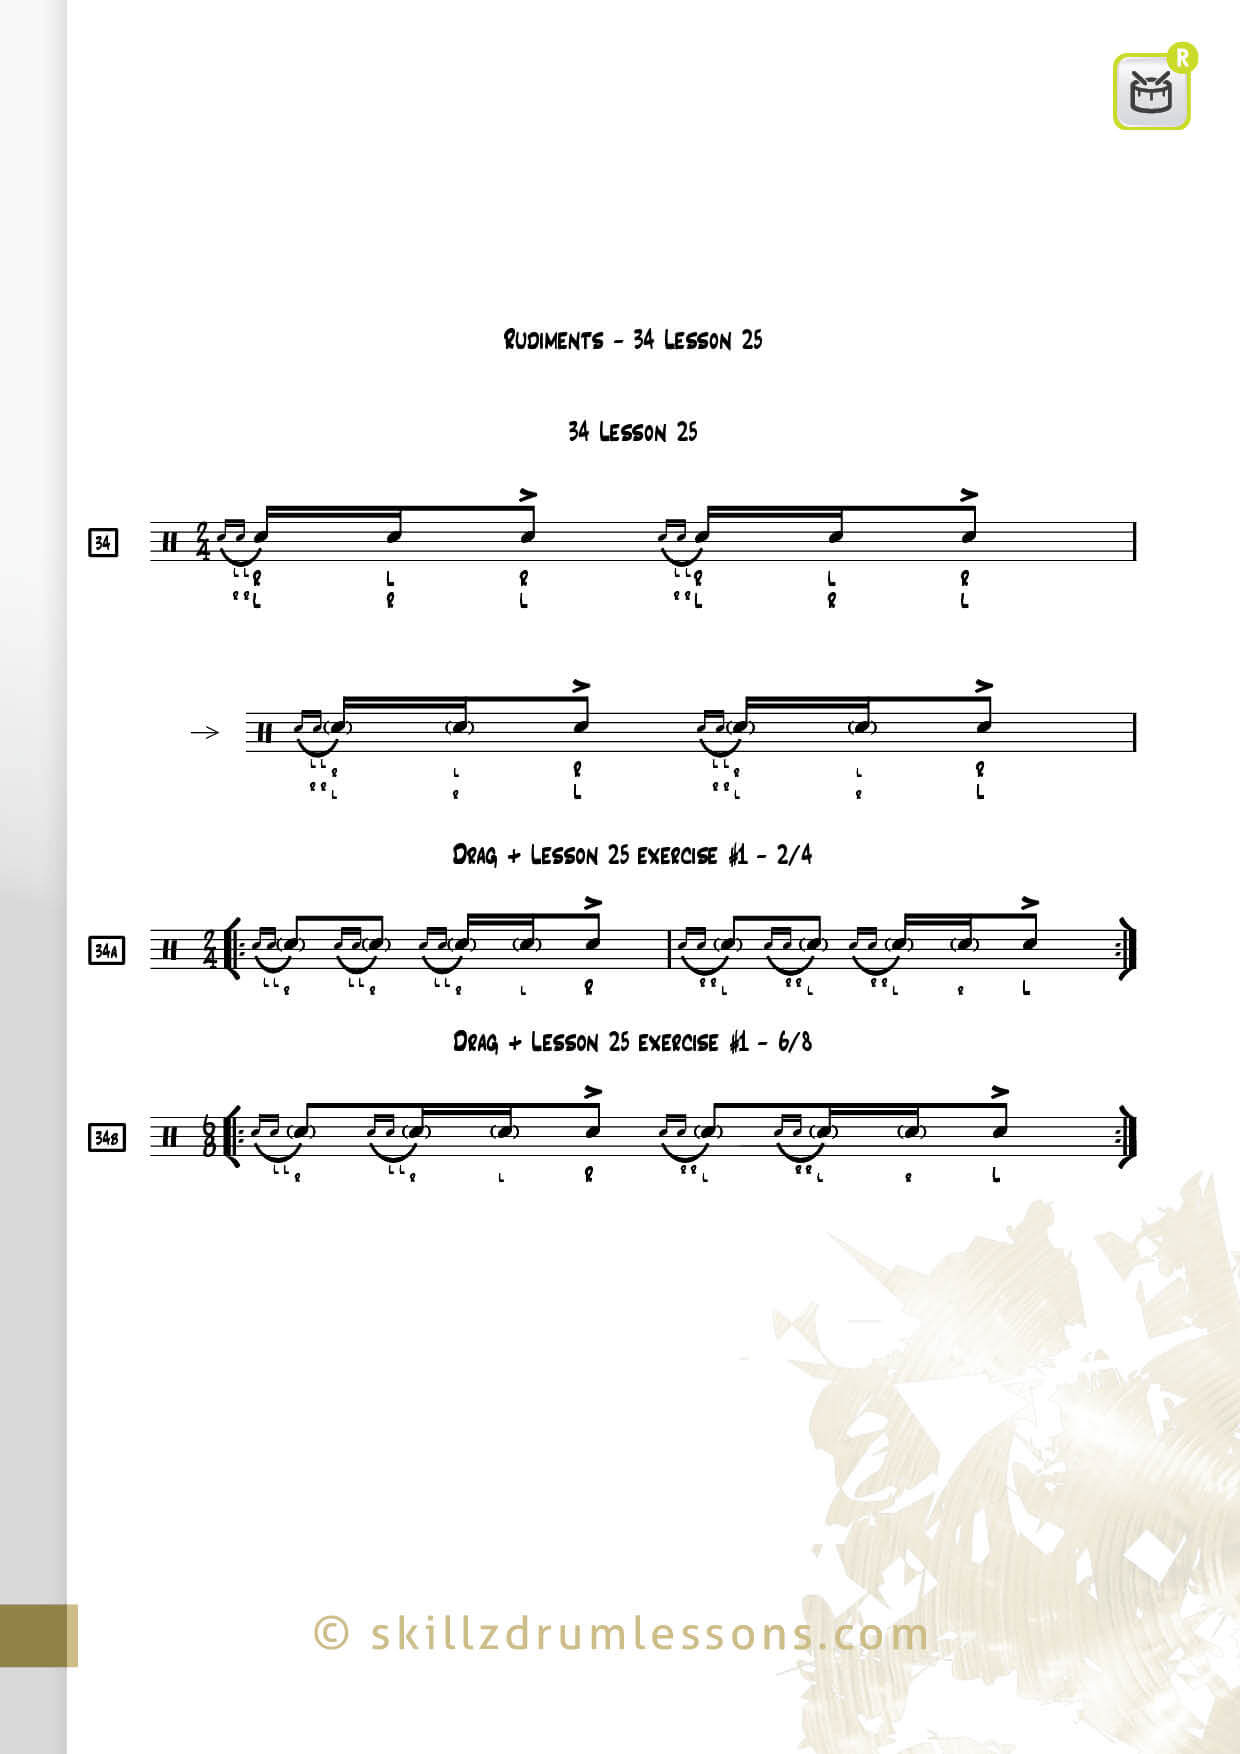 This is an image of the Official 40 Essential P.A.S. Rudiments #34 The Lesson 25 by Skillz Drum Lessons